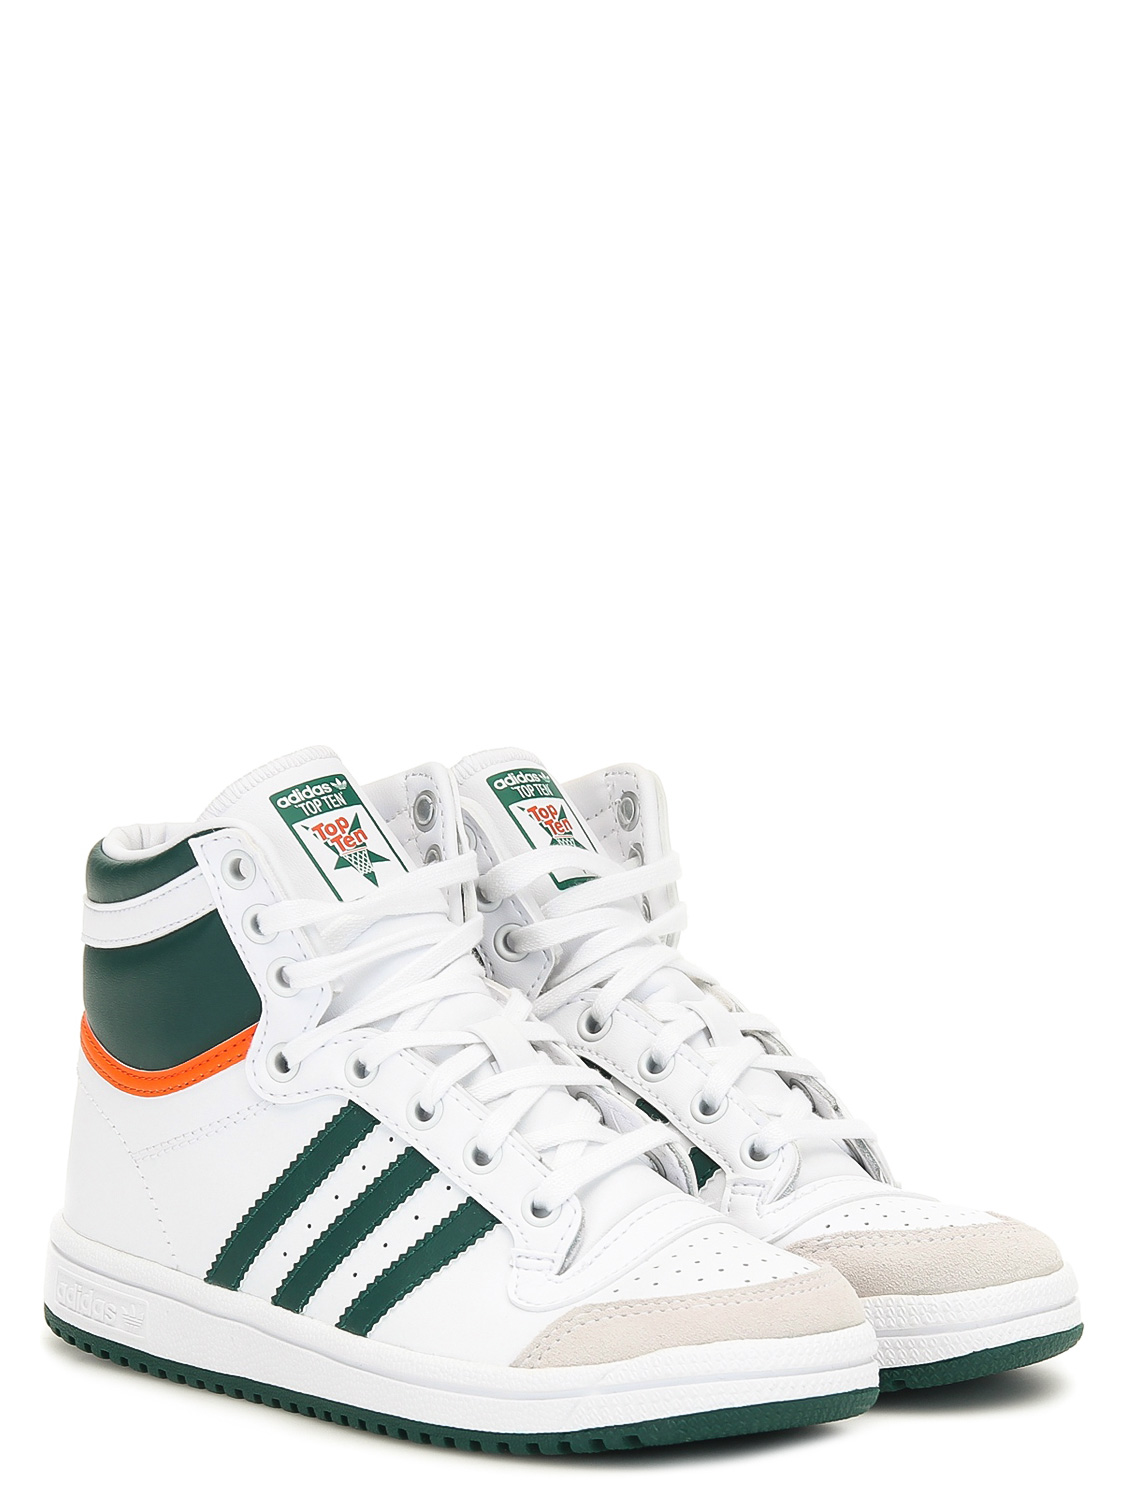 ADIDAS sneakers TOP TEN HI white |